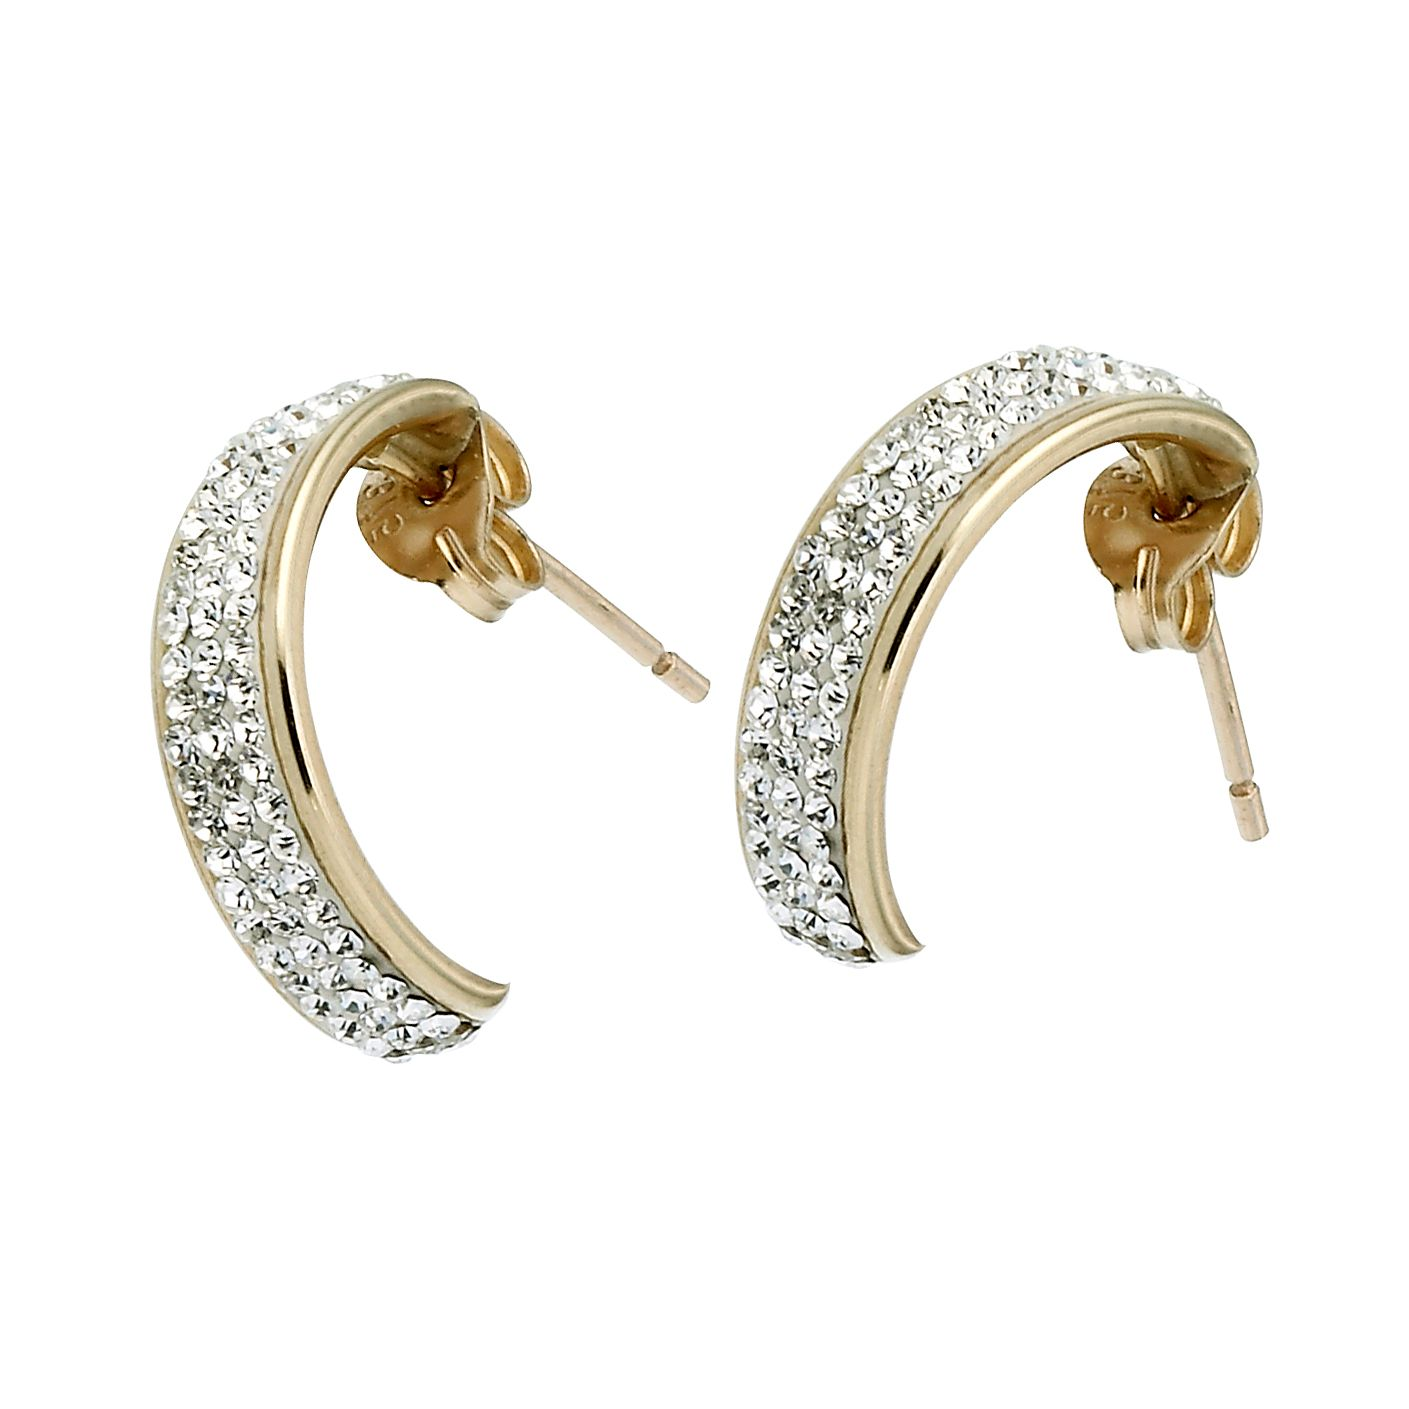 9ct Yellow Gold Crystal 12mm 1/2 Hoop Stud Earrings - Product number 6582613